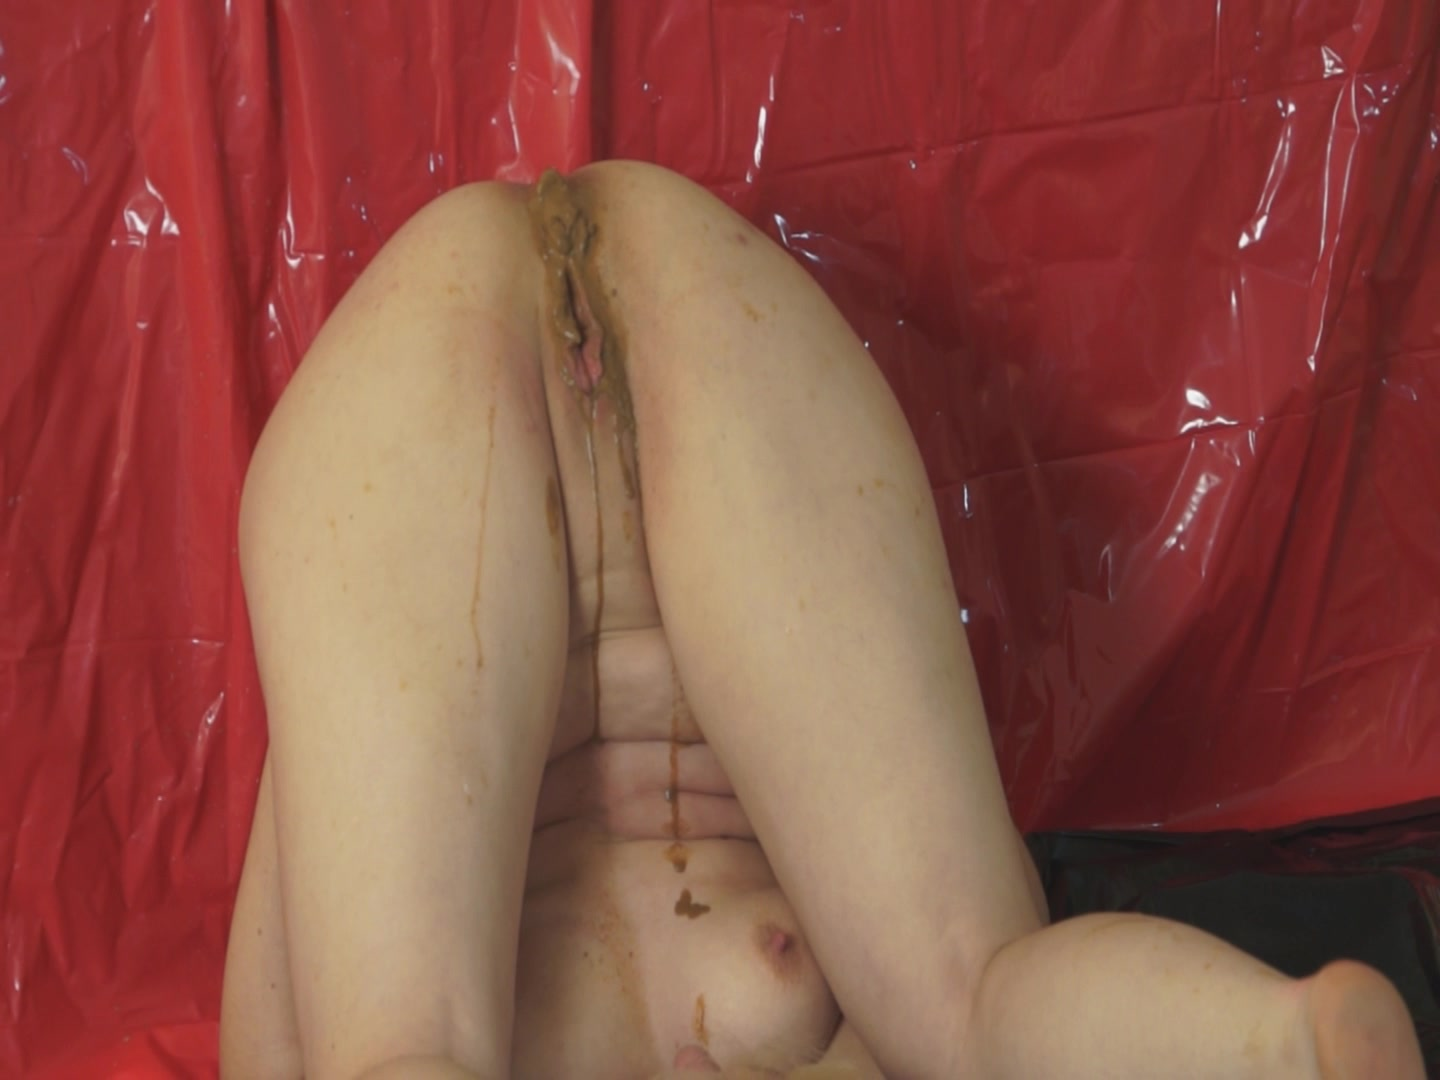 Scatty Girl Homemade Videos - Scatties Enema [Scat]